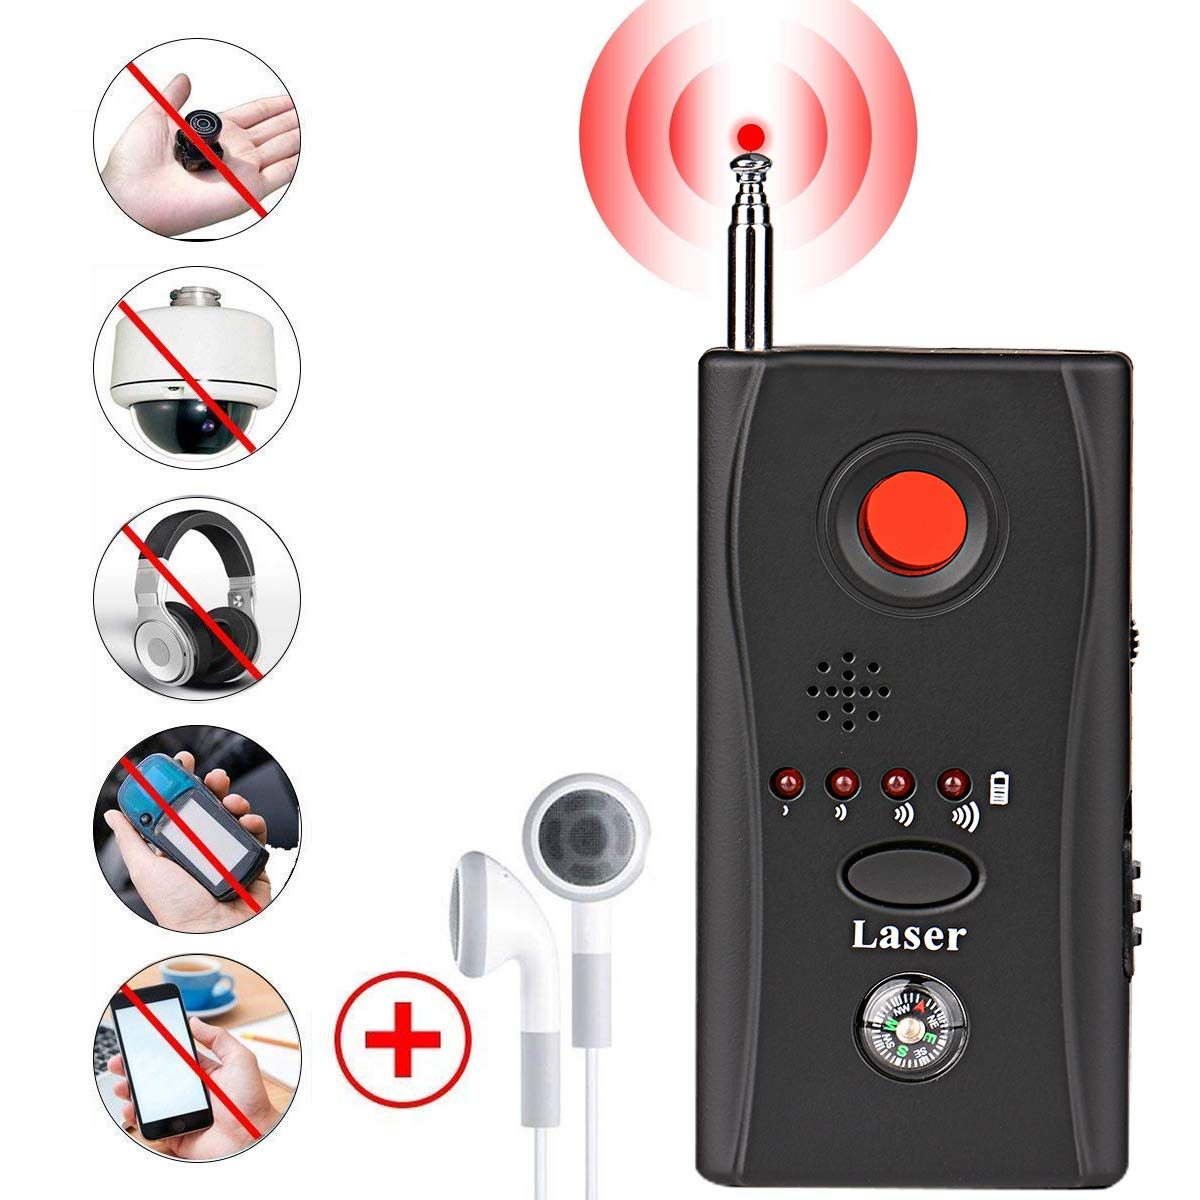 Bug Detector, RF Anti-Spy Wireless Detector,Hidden Camera Pinhole Laser Lens GSM Device Finder,Full-Range All-Round Portable Detector for Eavesdropping, ...